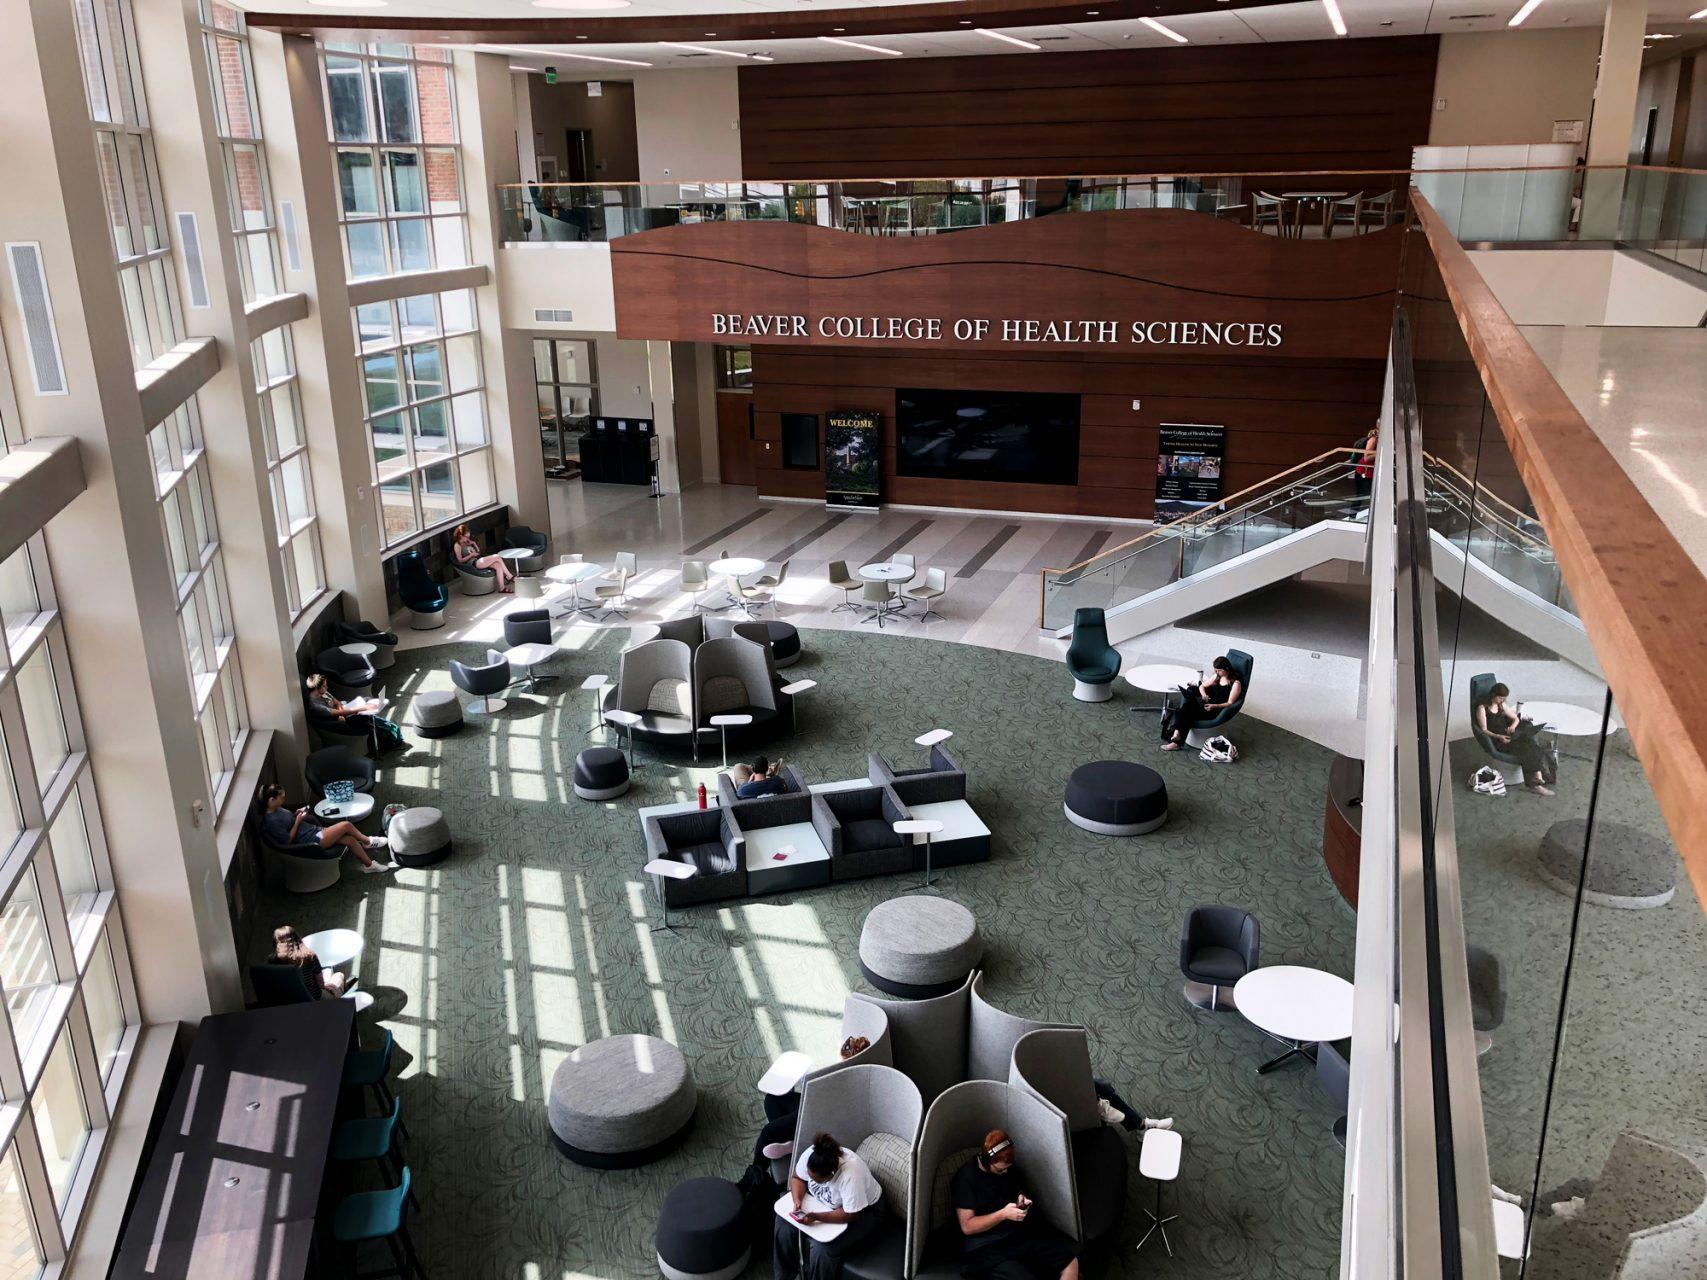 Leon Levine Hall of Health Sciences begins move-in